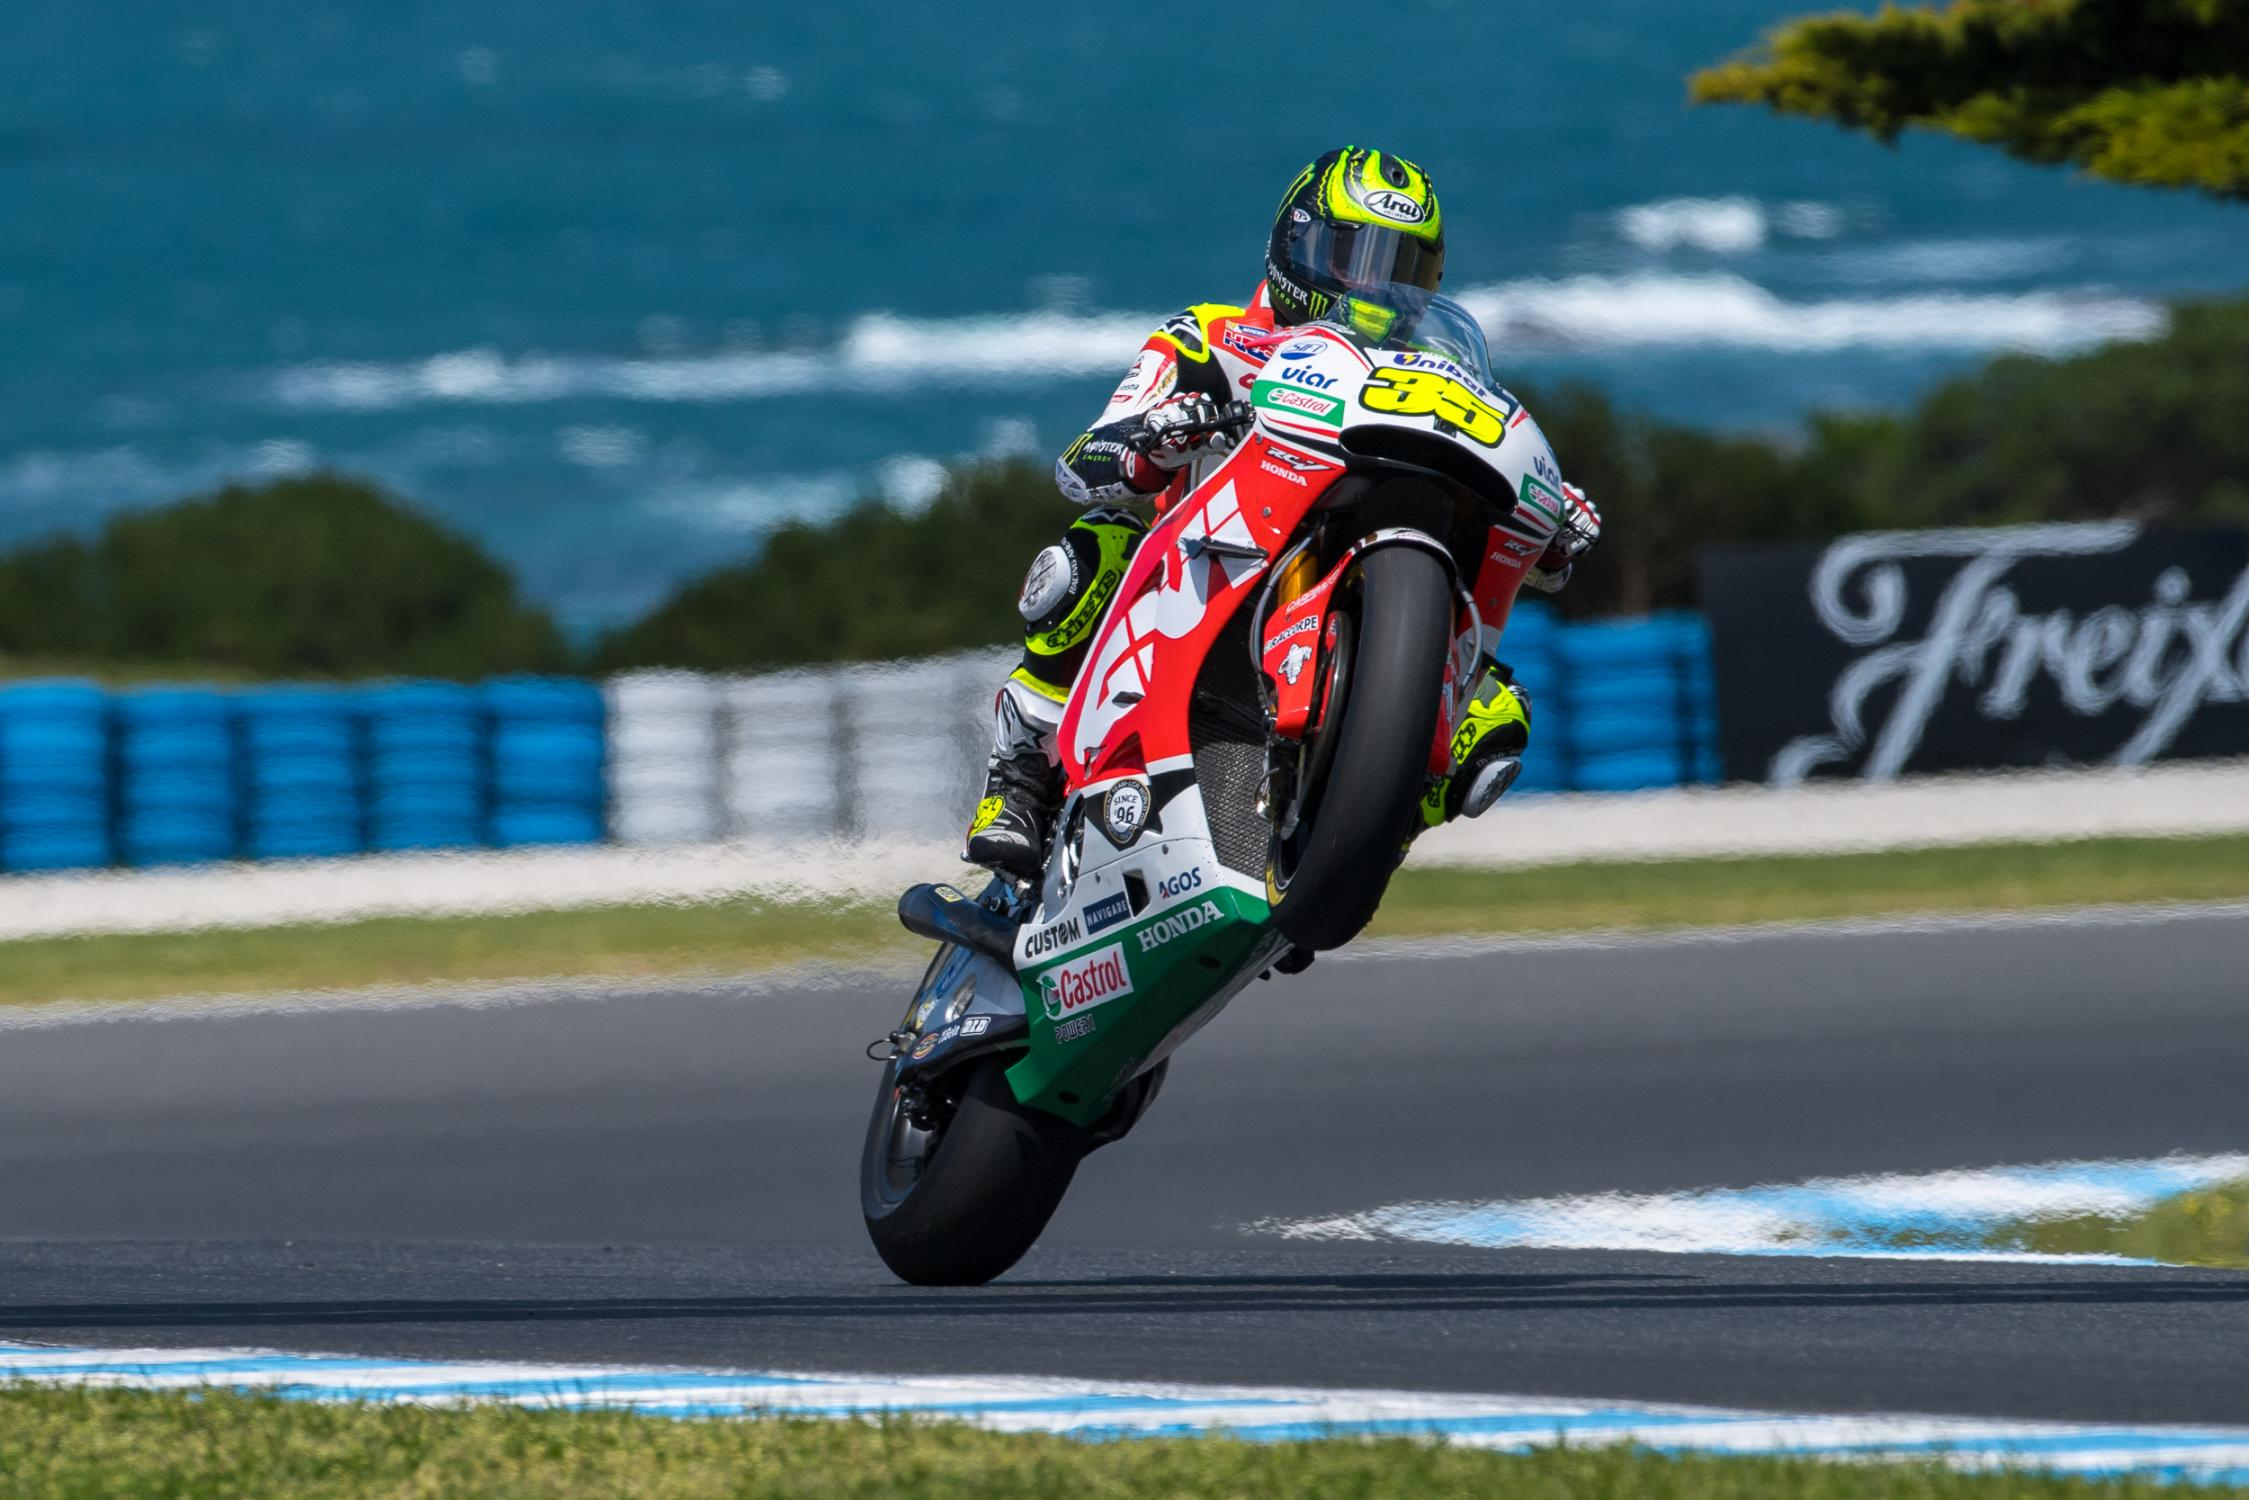 [GP] Philip Island 35-cal-crutchlow-englg5_2598.gallery_full_top_fullscreen